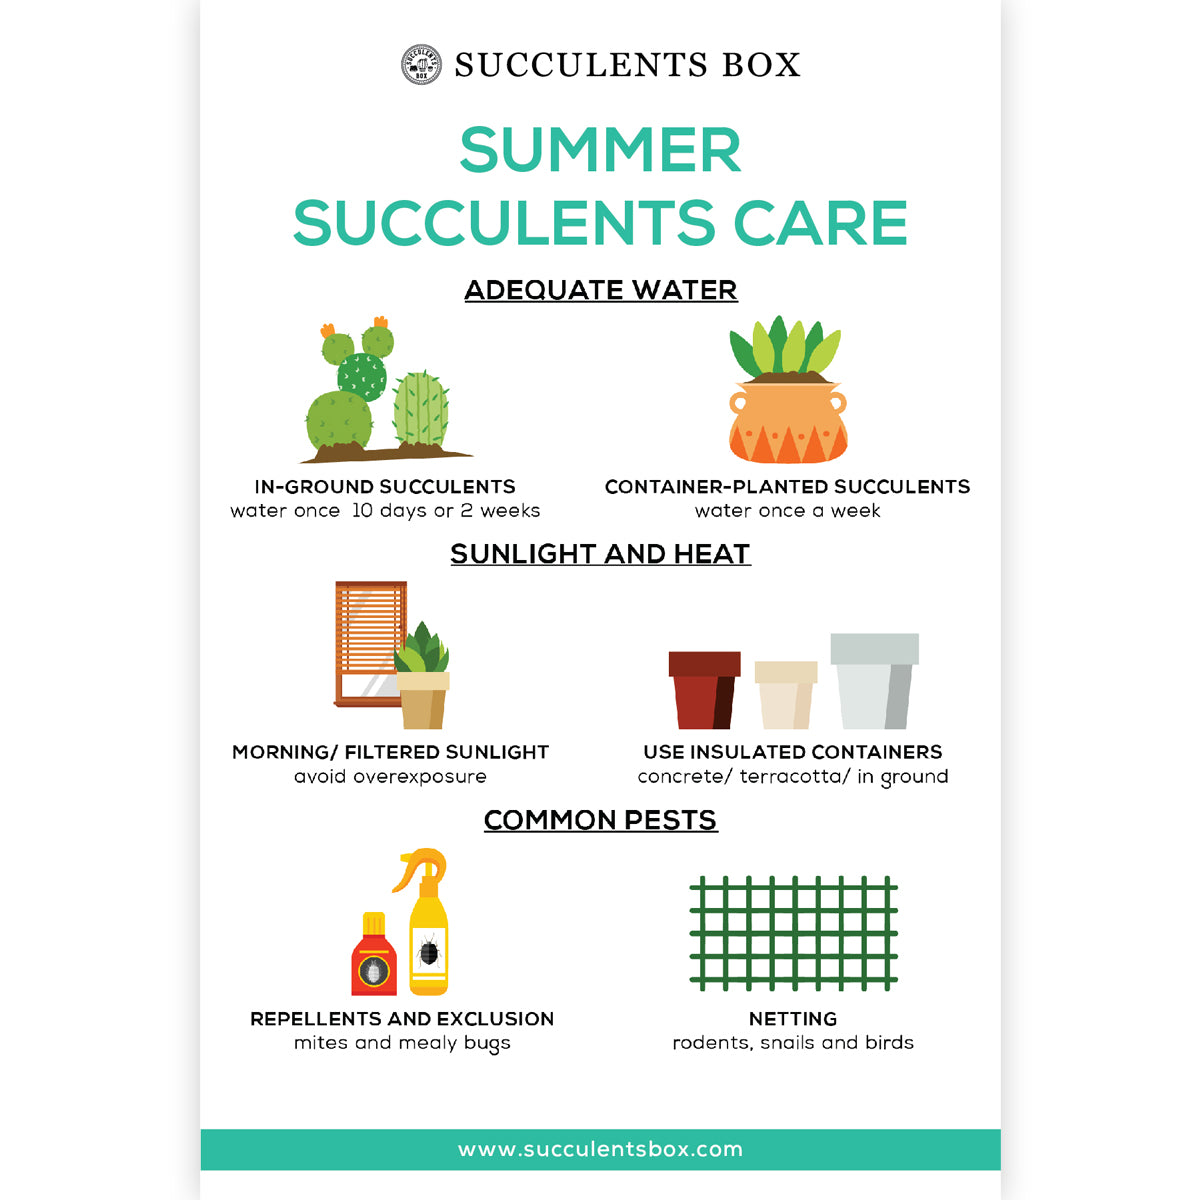 Summer Succulents Care Card for sale, How to care for succulents in summer, Succulent care instruction